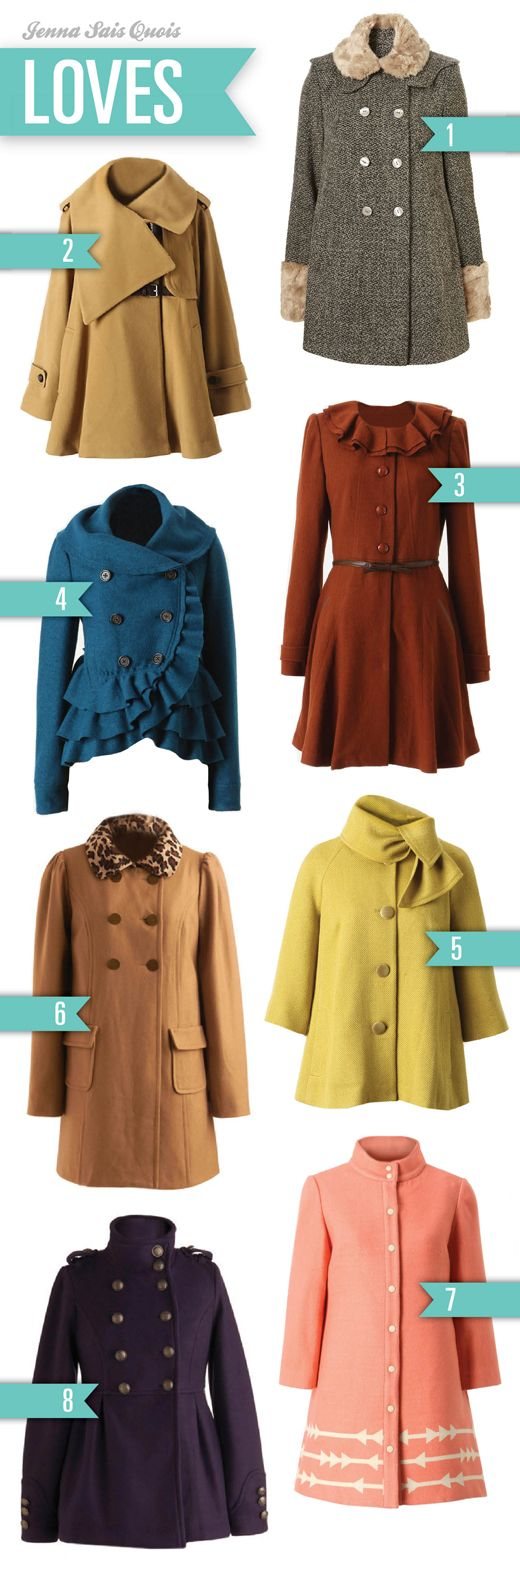 Oh my goodness...beautiful coats